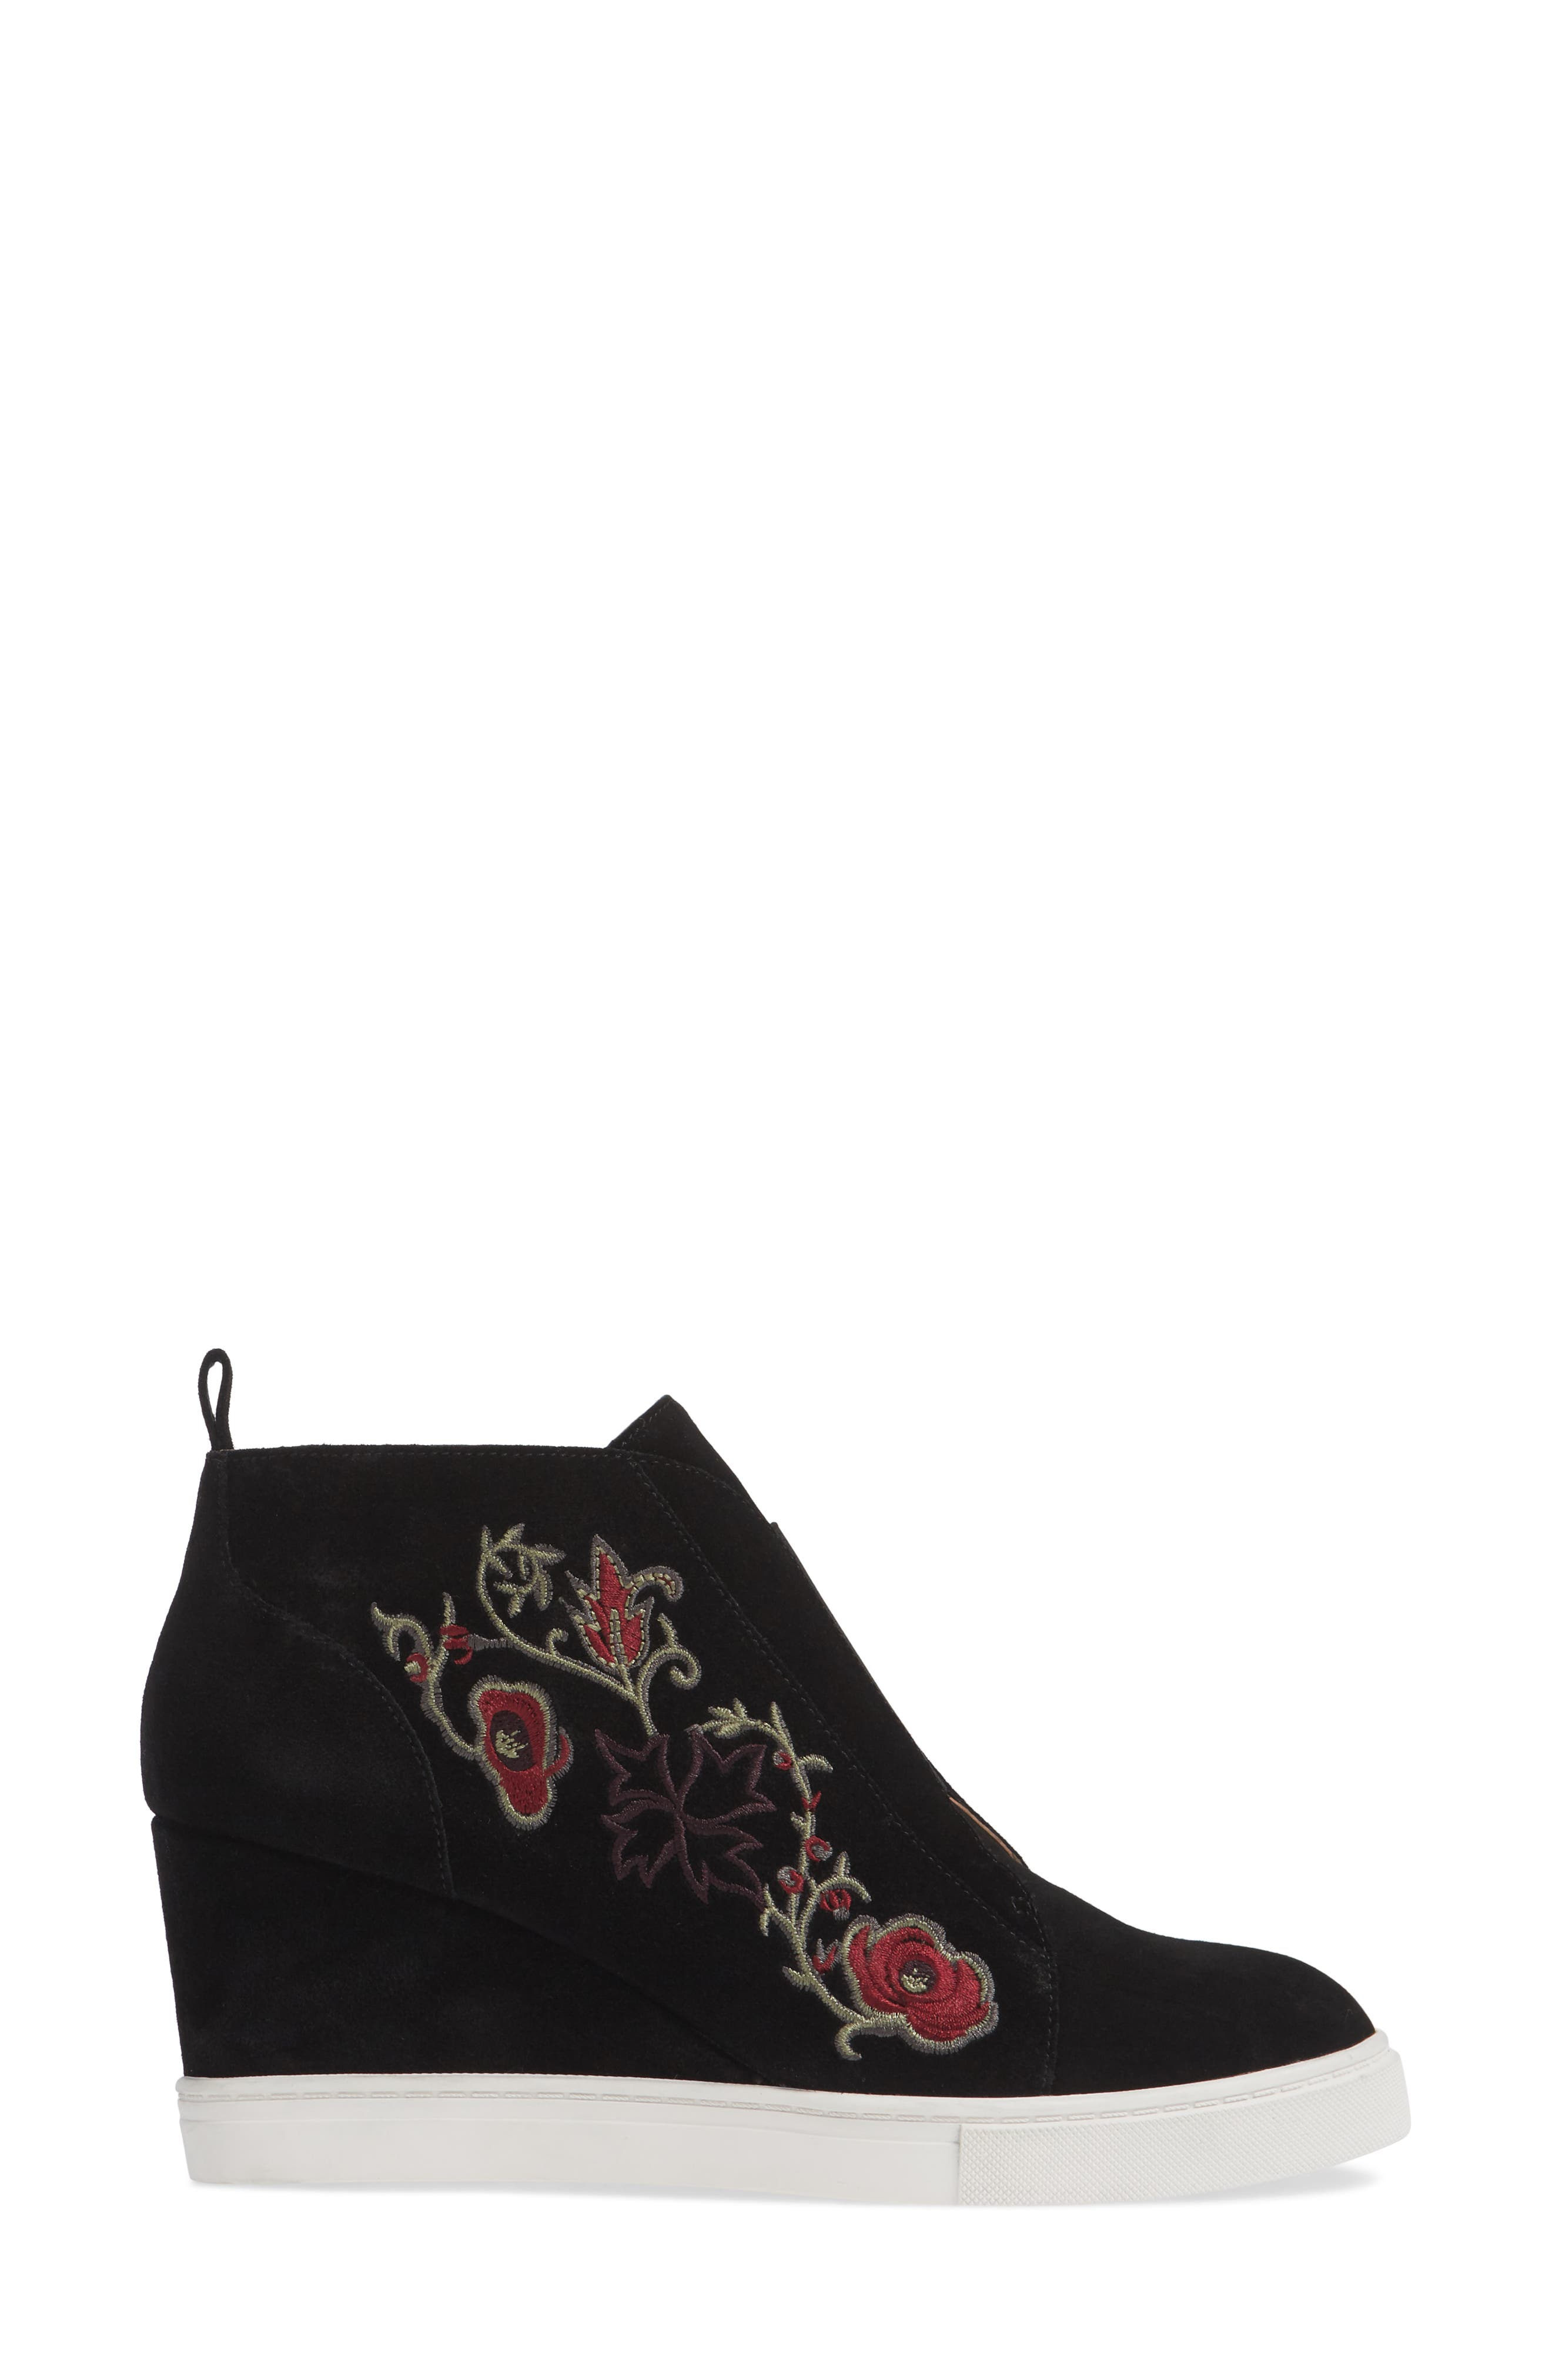 LINEA PAOLO, Felicia II Wedge Bootie, Alternate thumbnail 3, color, BLACK/ BLACK EMBROIDERY SUEDE